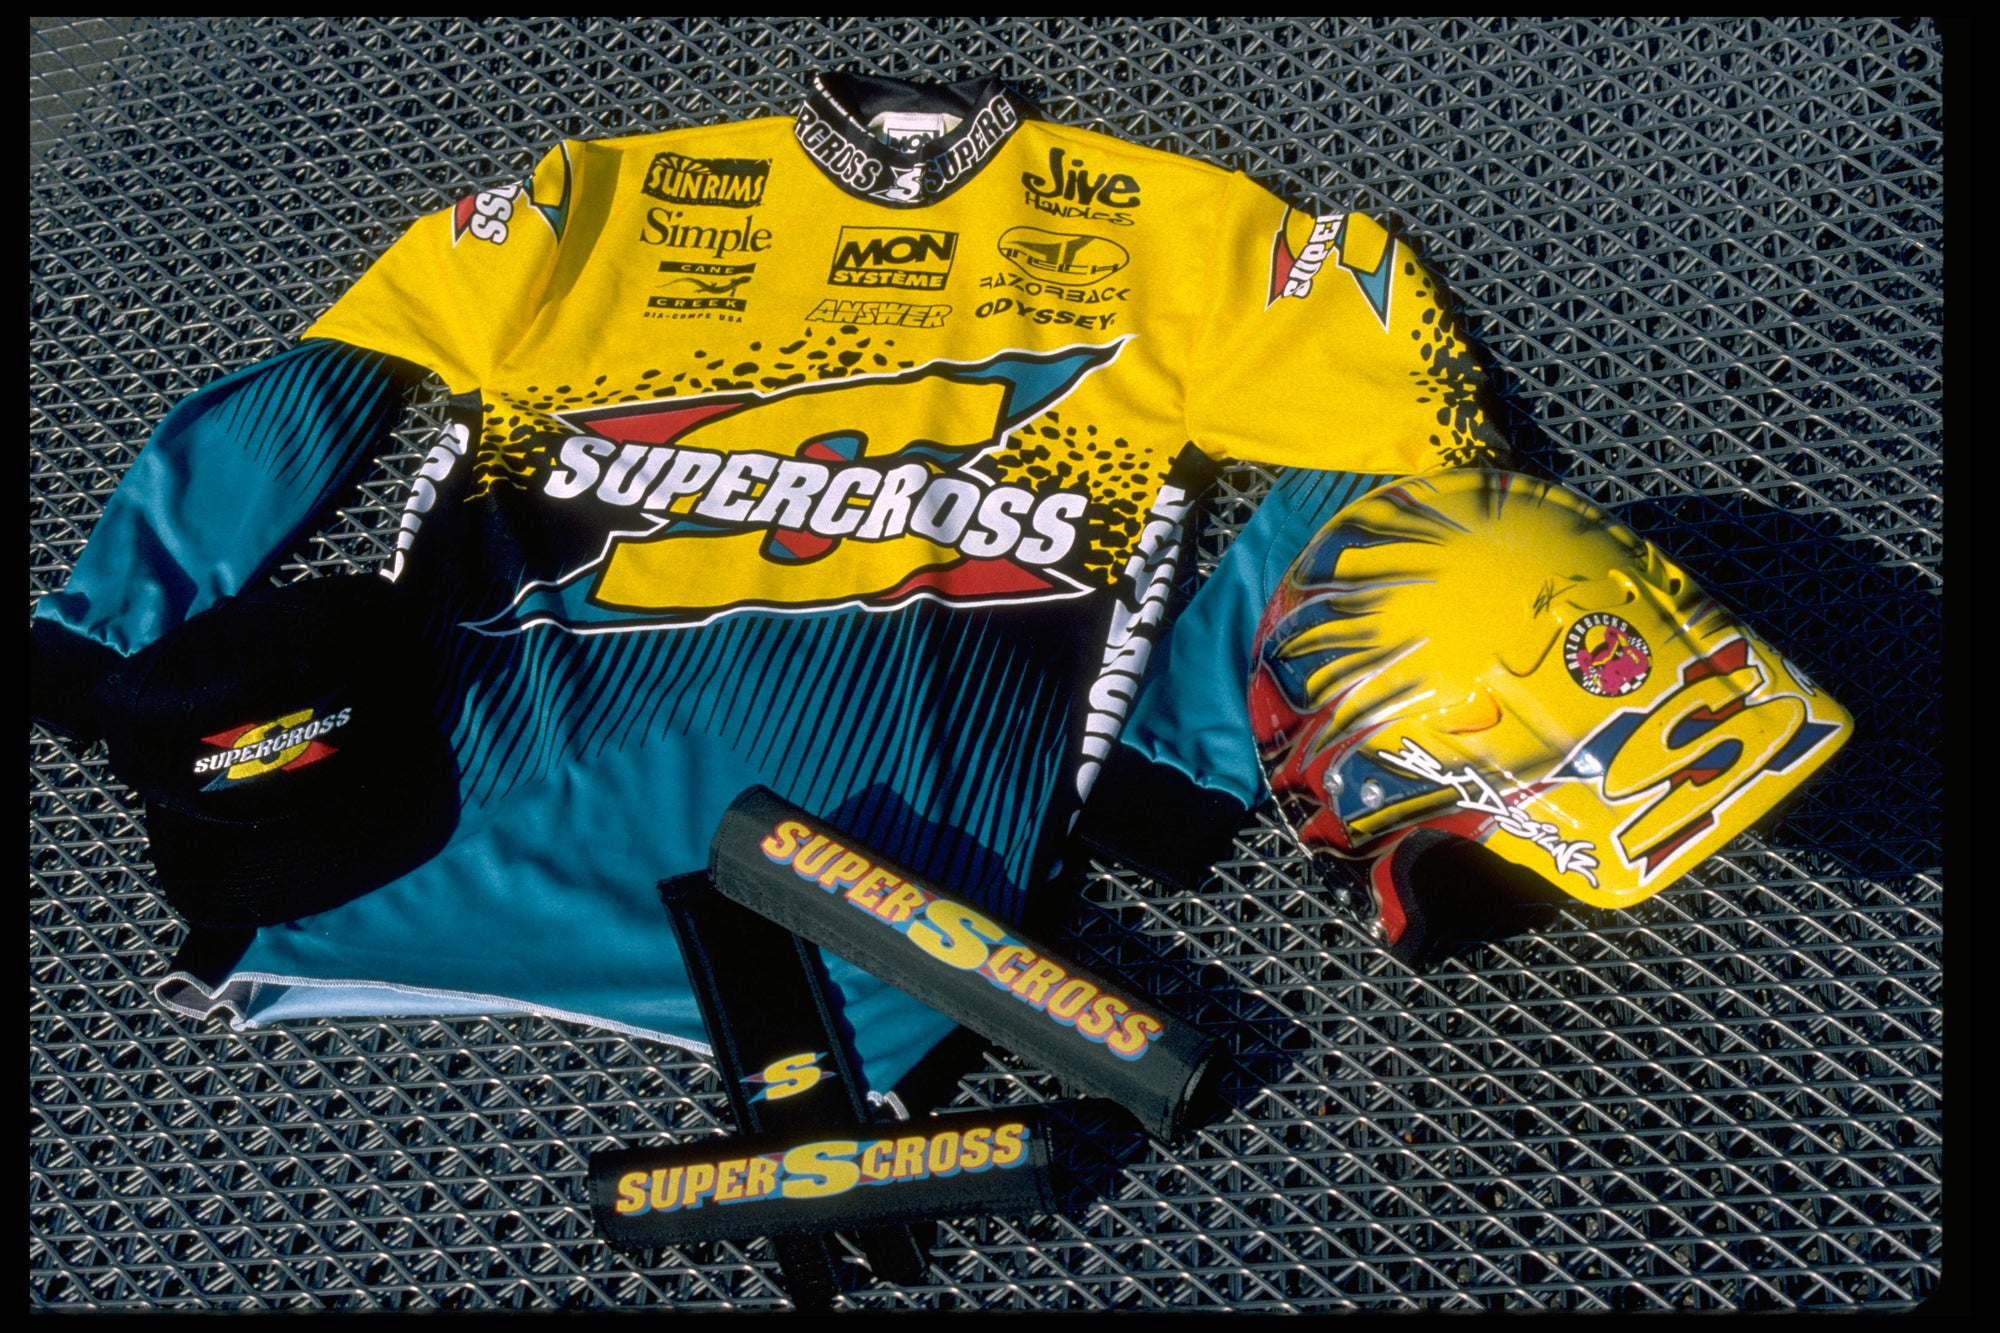 Supercross BMX | 90's BMX Racing Jersey - Supercross BMX - BMX Racing